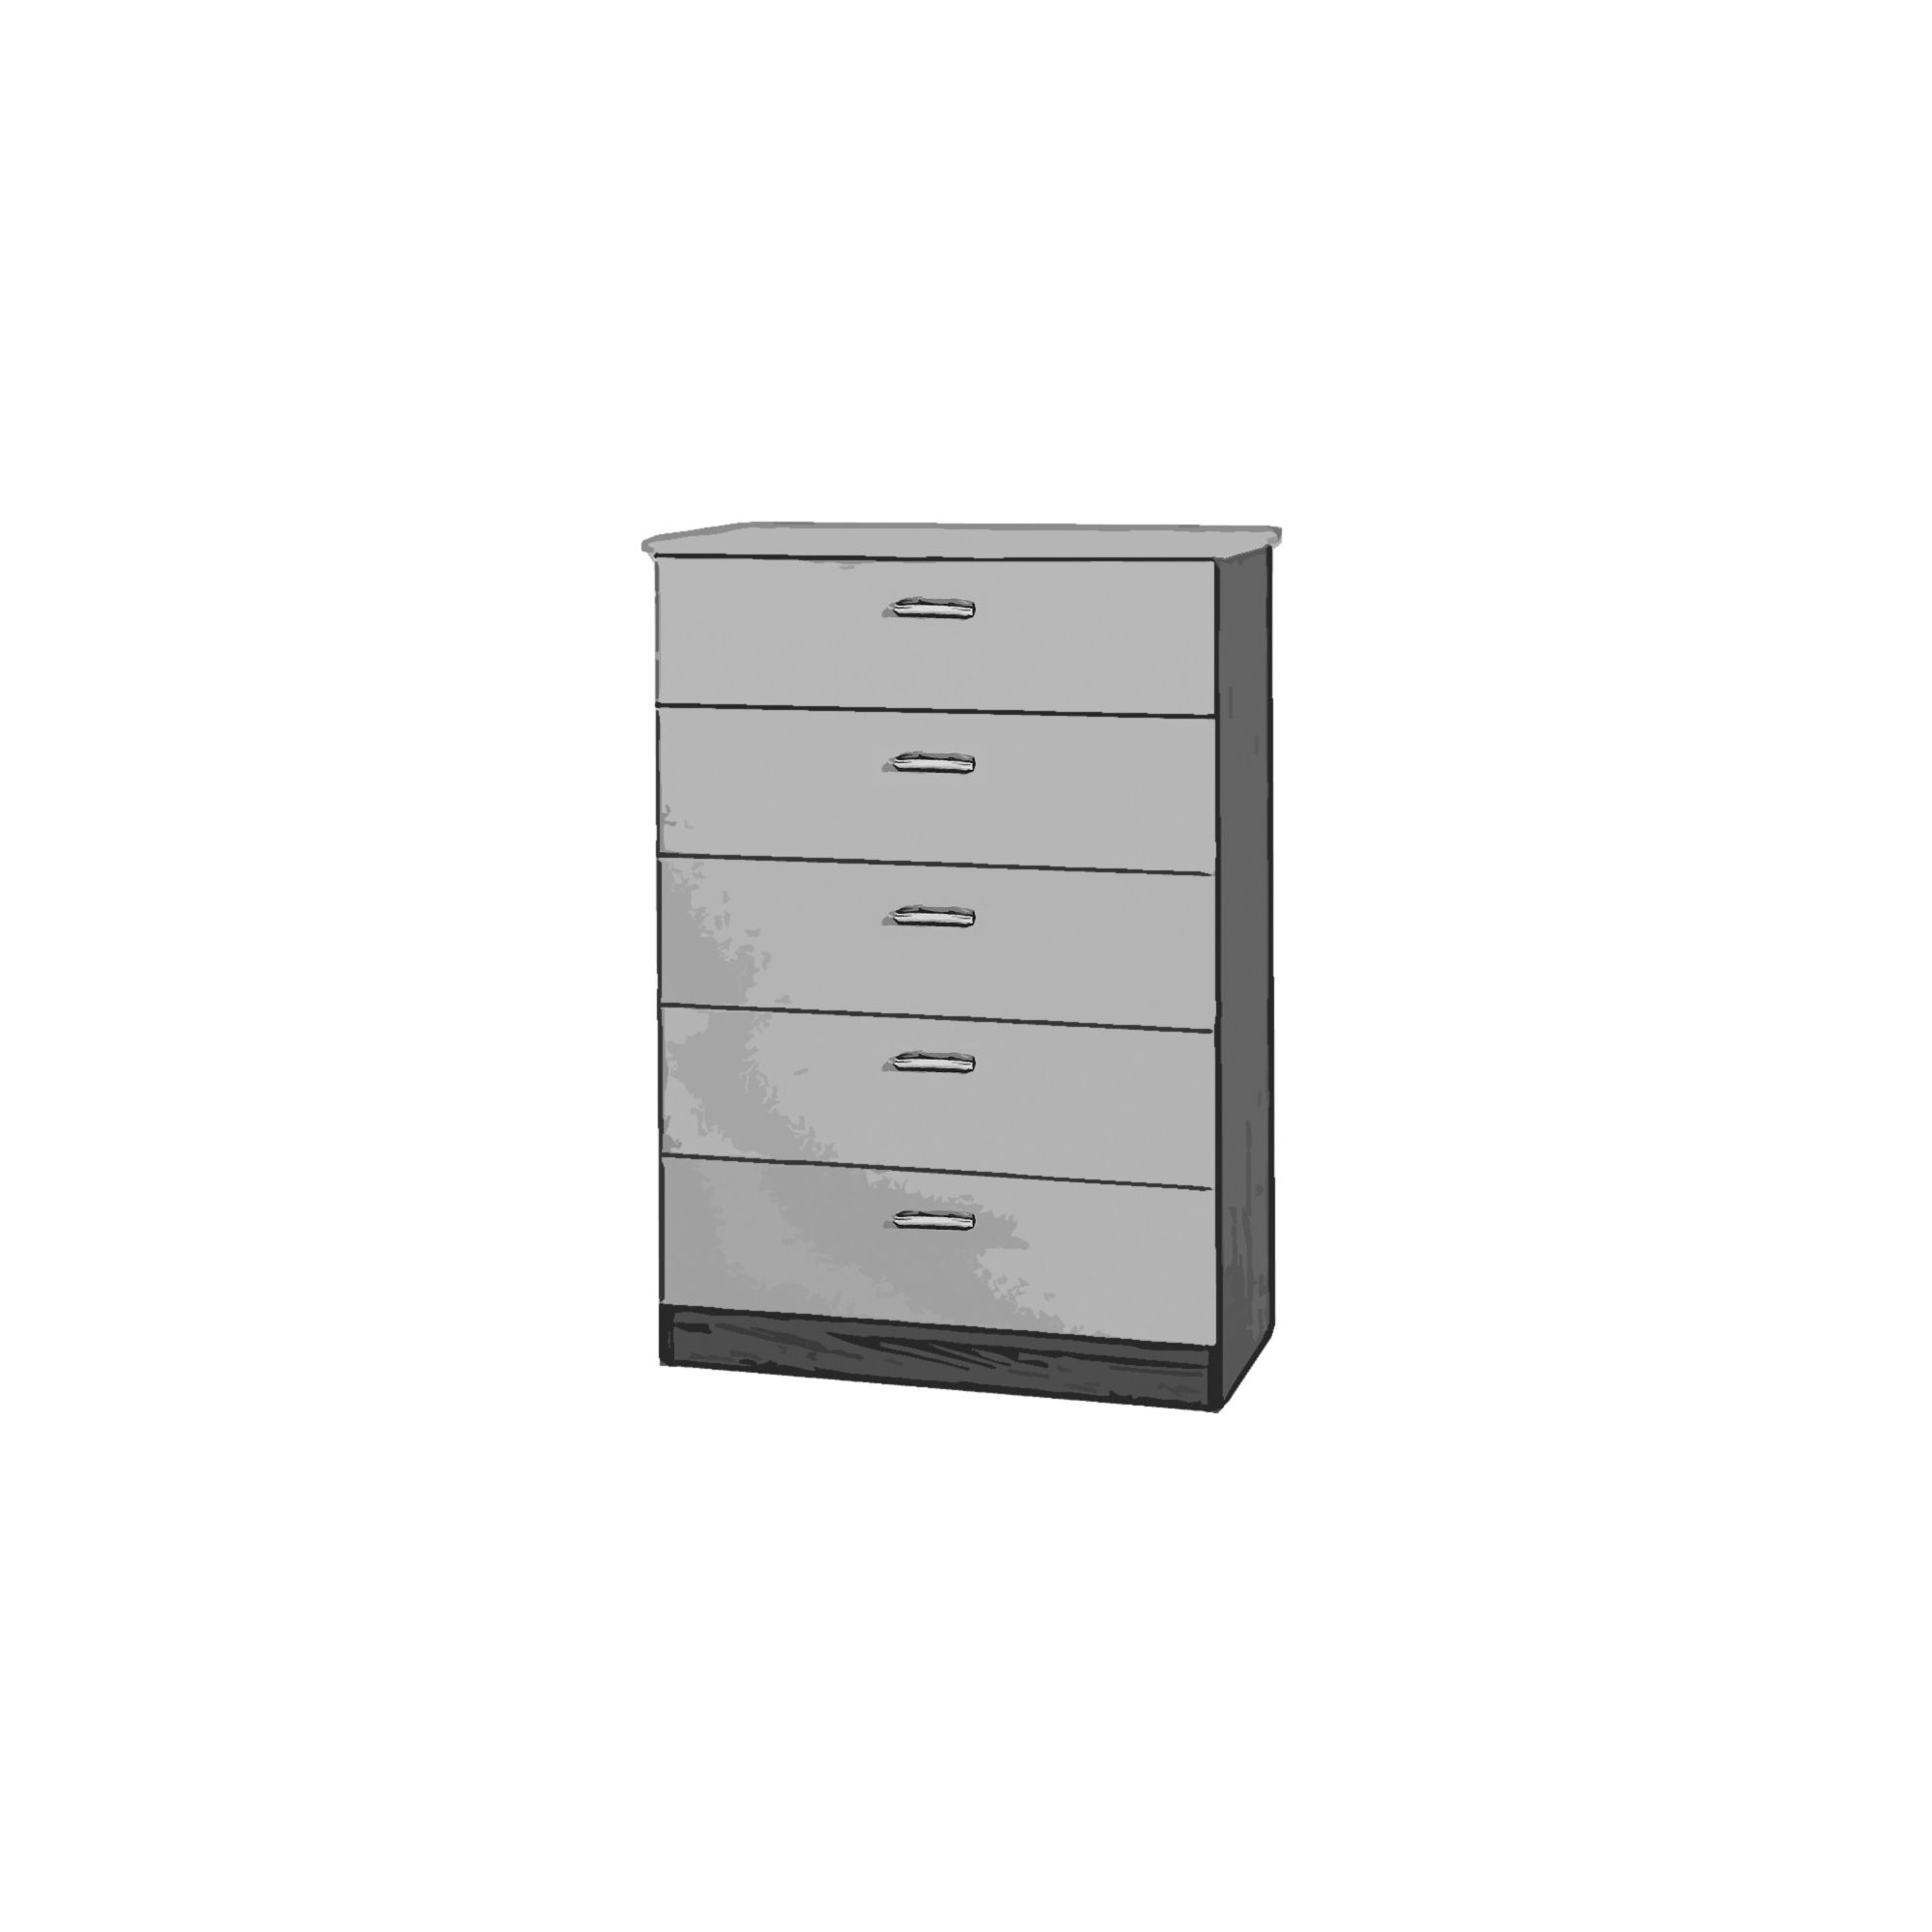 Welcome Furniture Mayfair 5 Drawer Chest - Aubergine - Black - Cream at Tesco Direct